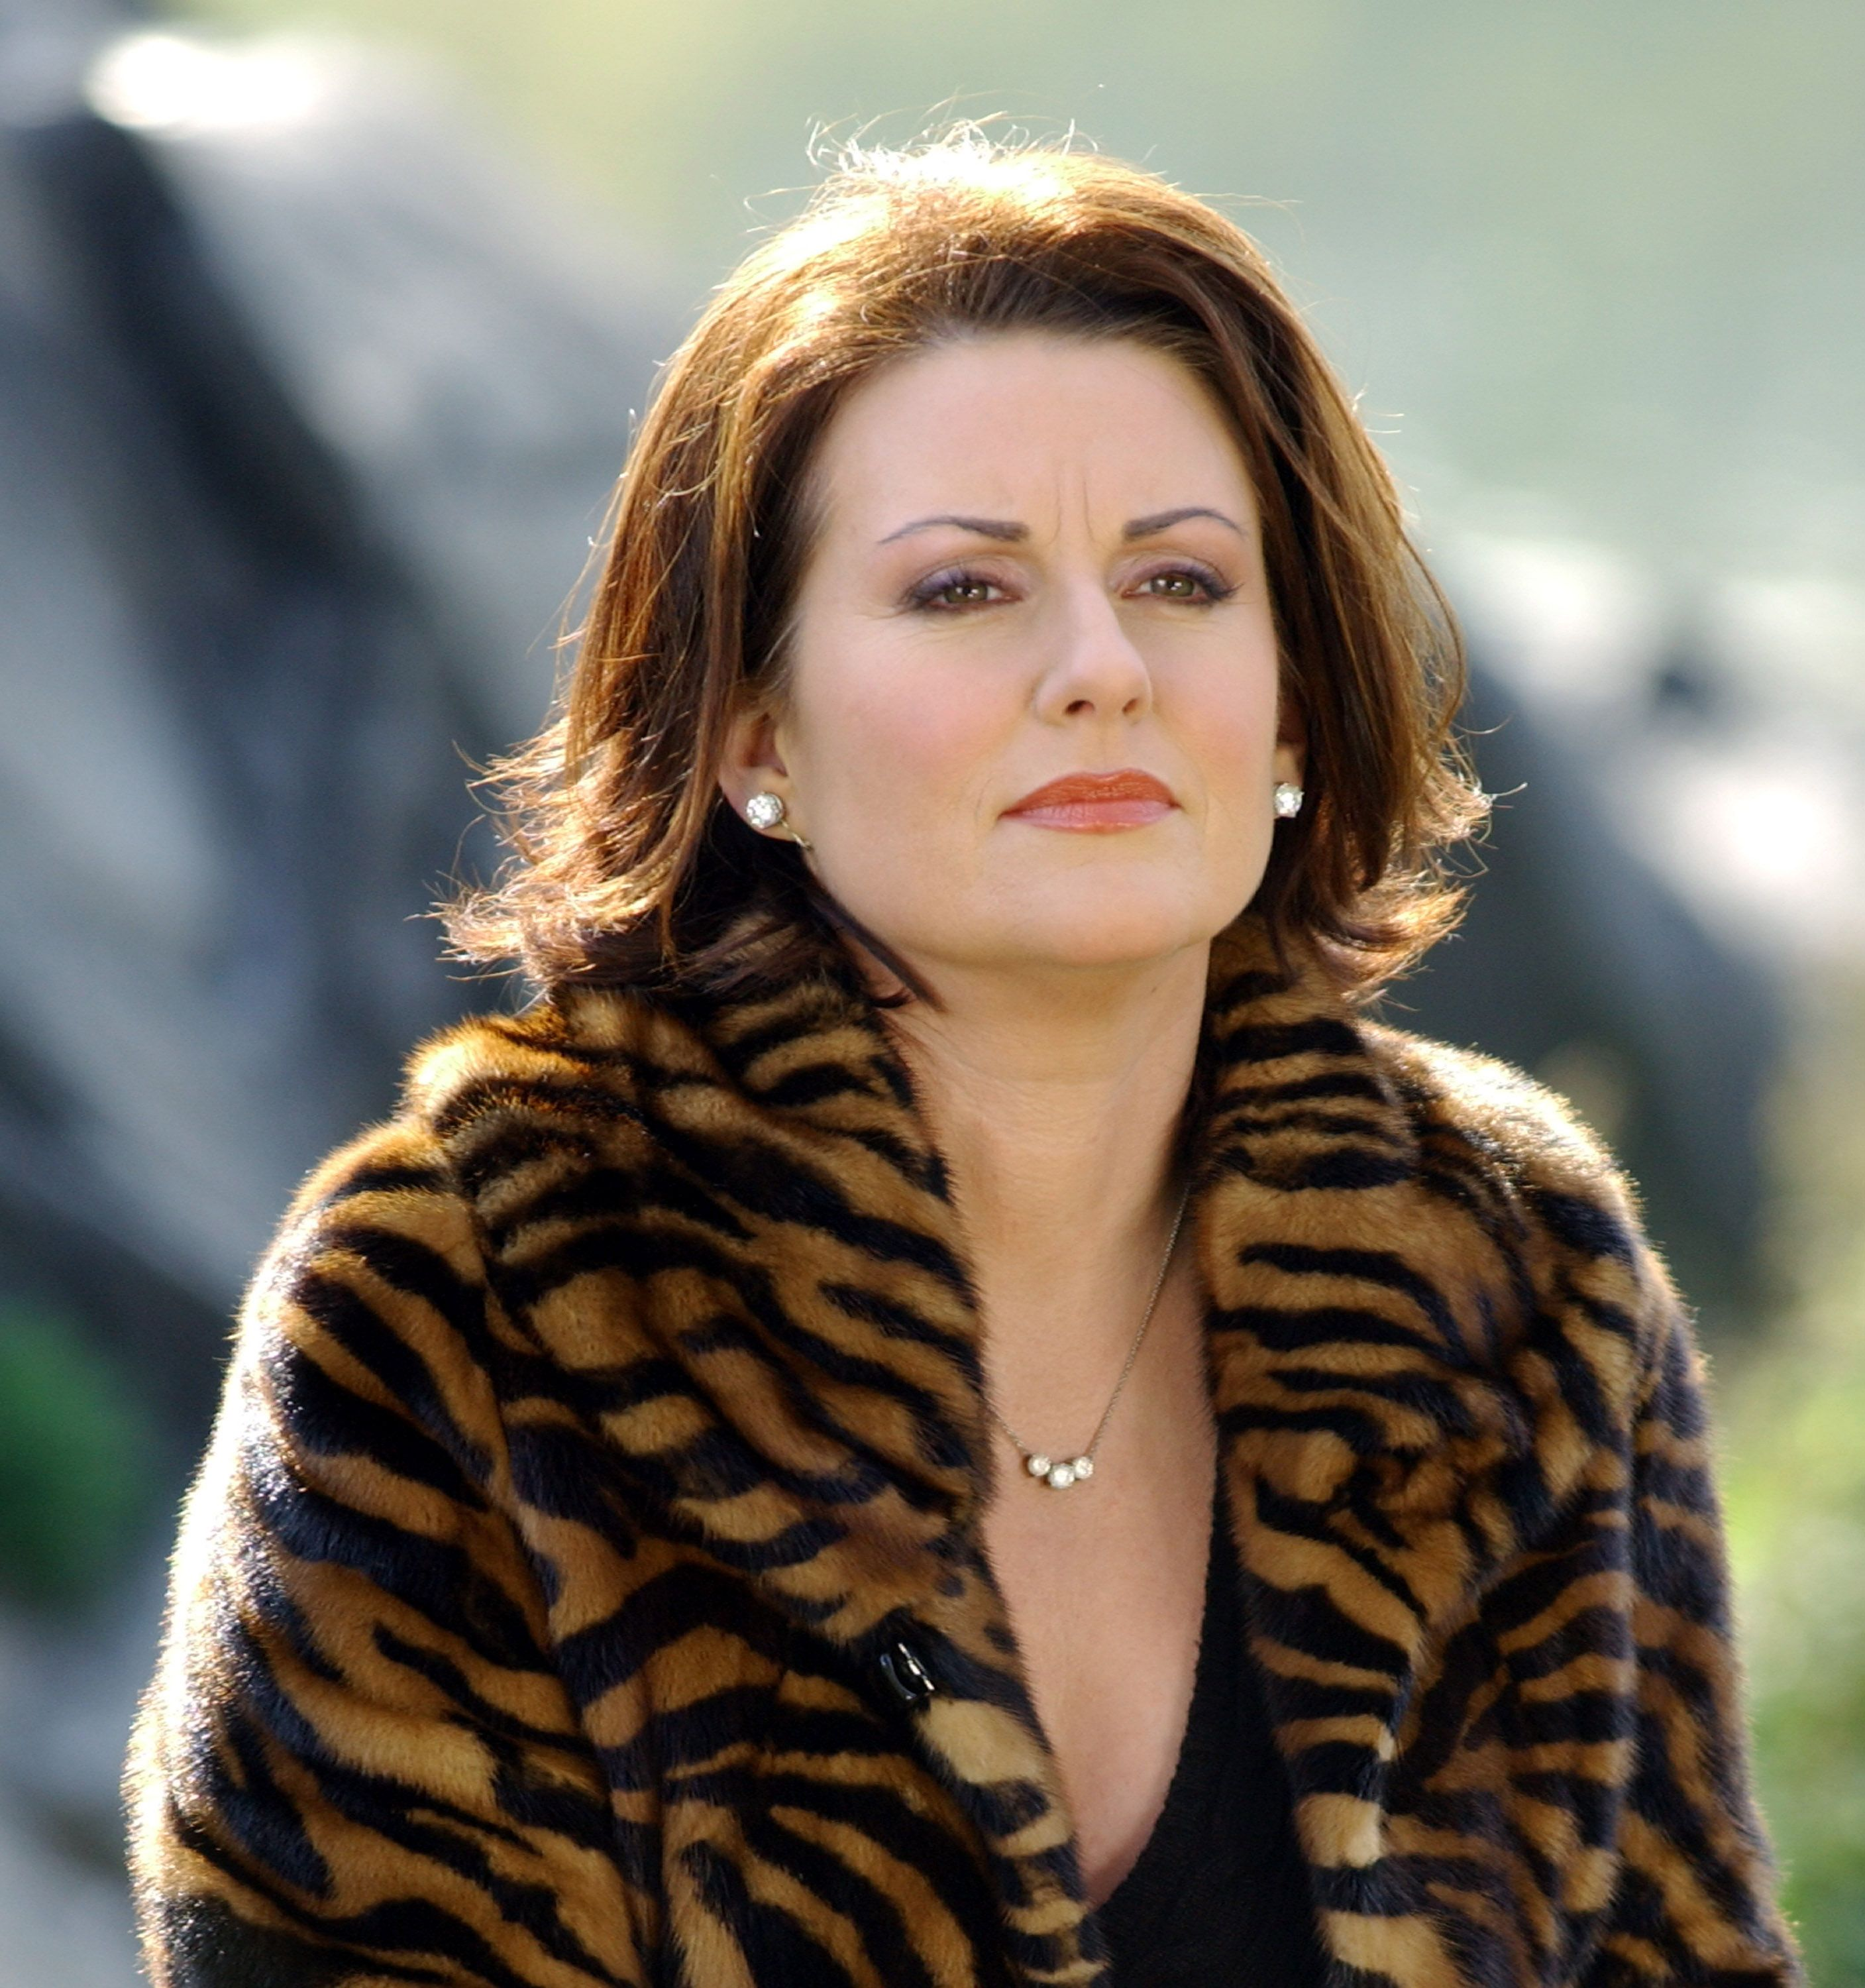 """Megan Mullally filming """"Will and Grace"""" in Central Park in New York City - November 8, 2002 